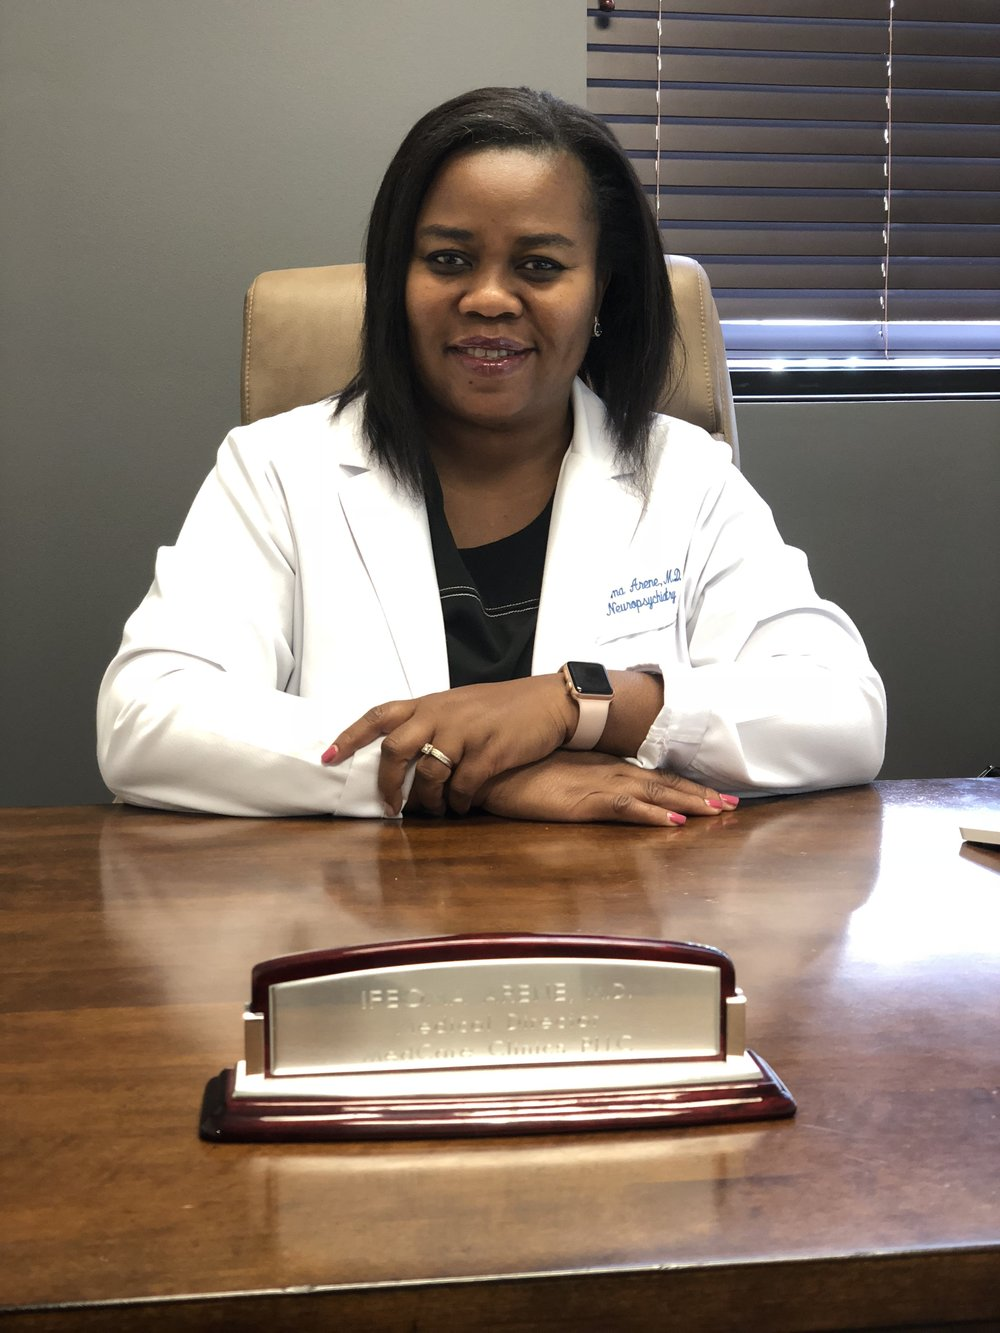 Ifeoma Arene - Dr. Arene is well known in the field of Psychiatry due to her experience, depth of knowledge and unique/approachable style of practice.